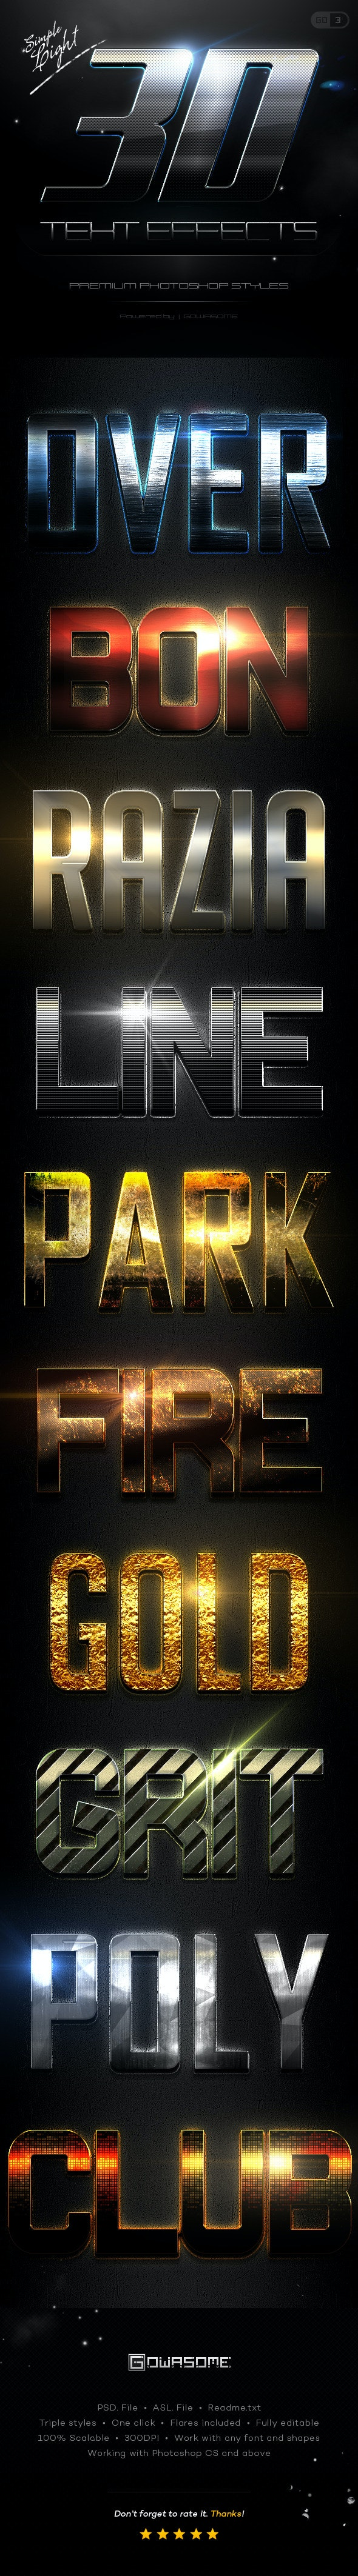 Simple 3D Light Text Effects GO.3 - Text Effects Styles